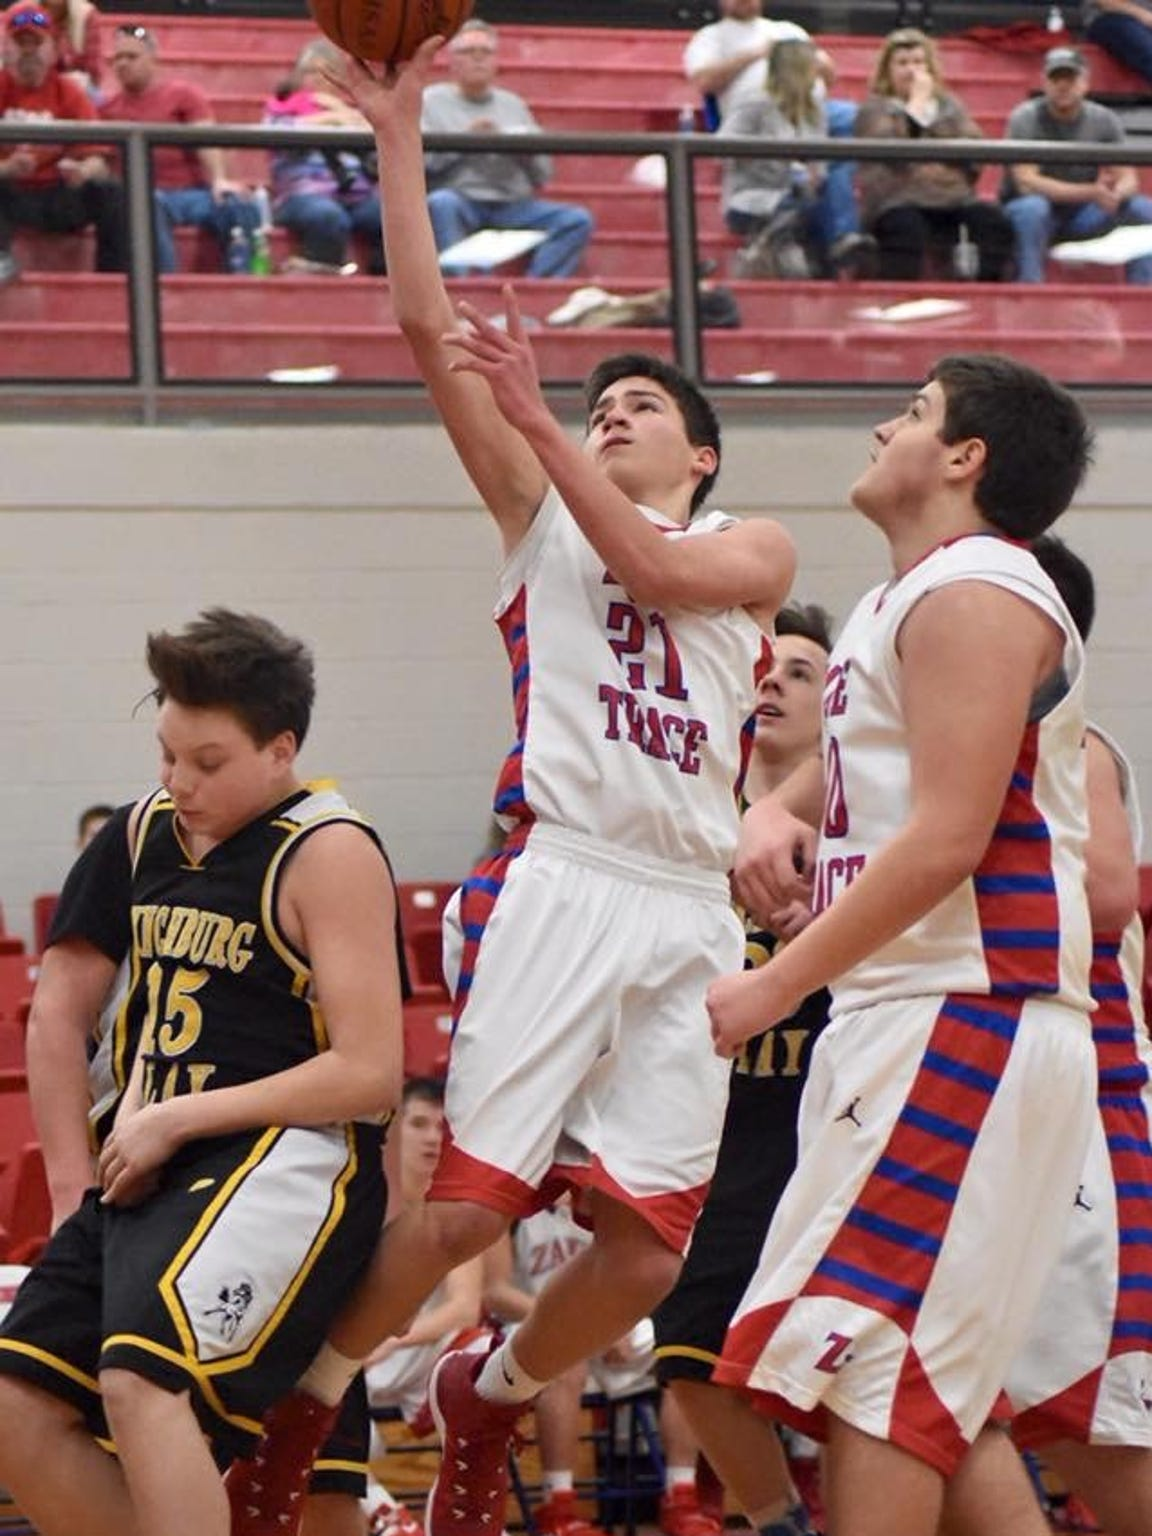 Tristan was on track to be an imperative part of Zane Trace's basketball program. Here, he's shown shooting in a junior varsity contest during his freshman year.